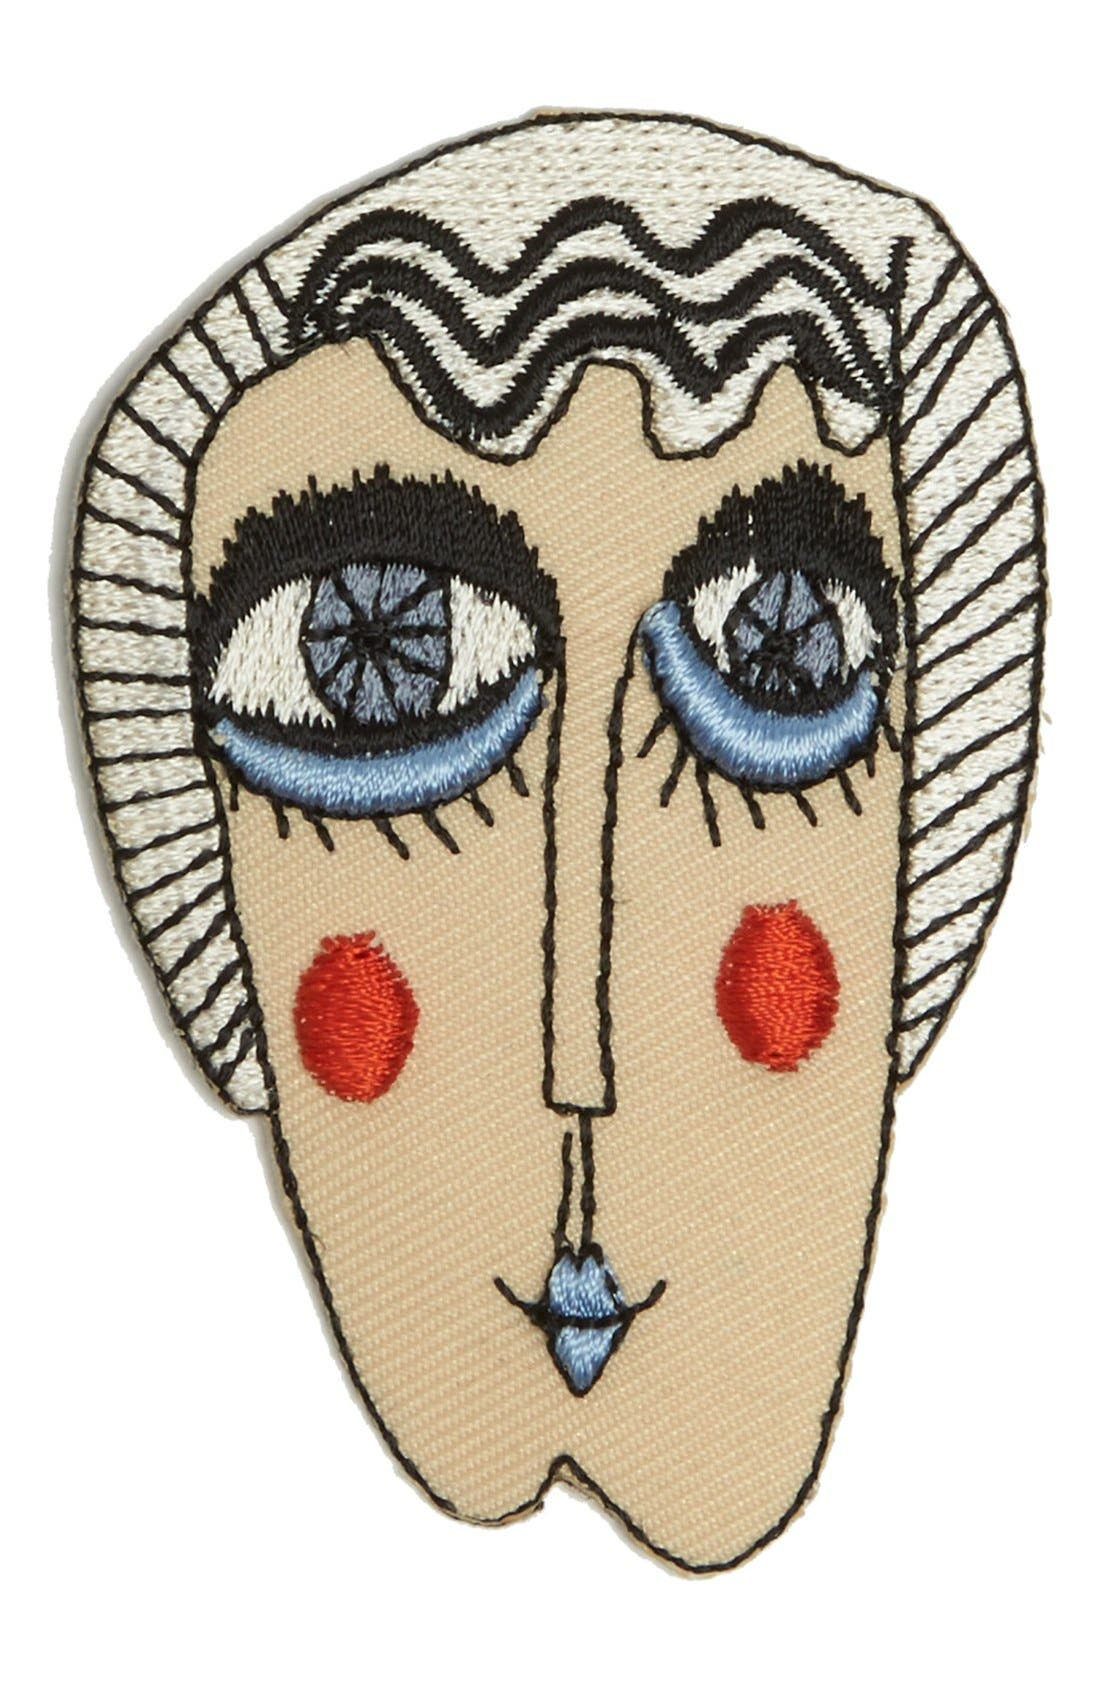 Alternate Image 1 Selected - Shrimps 'Jackie' Embroidered Fashion Accessory Patch